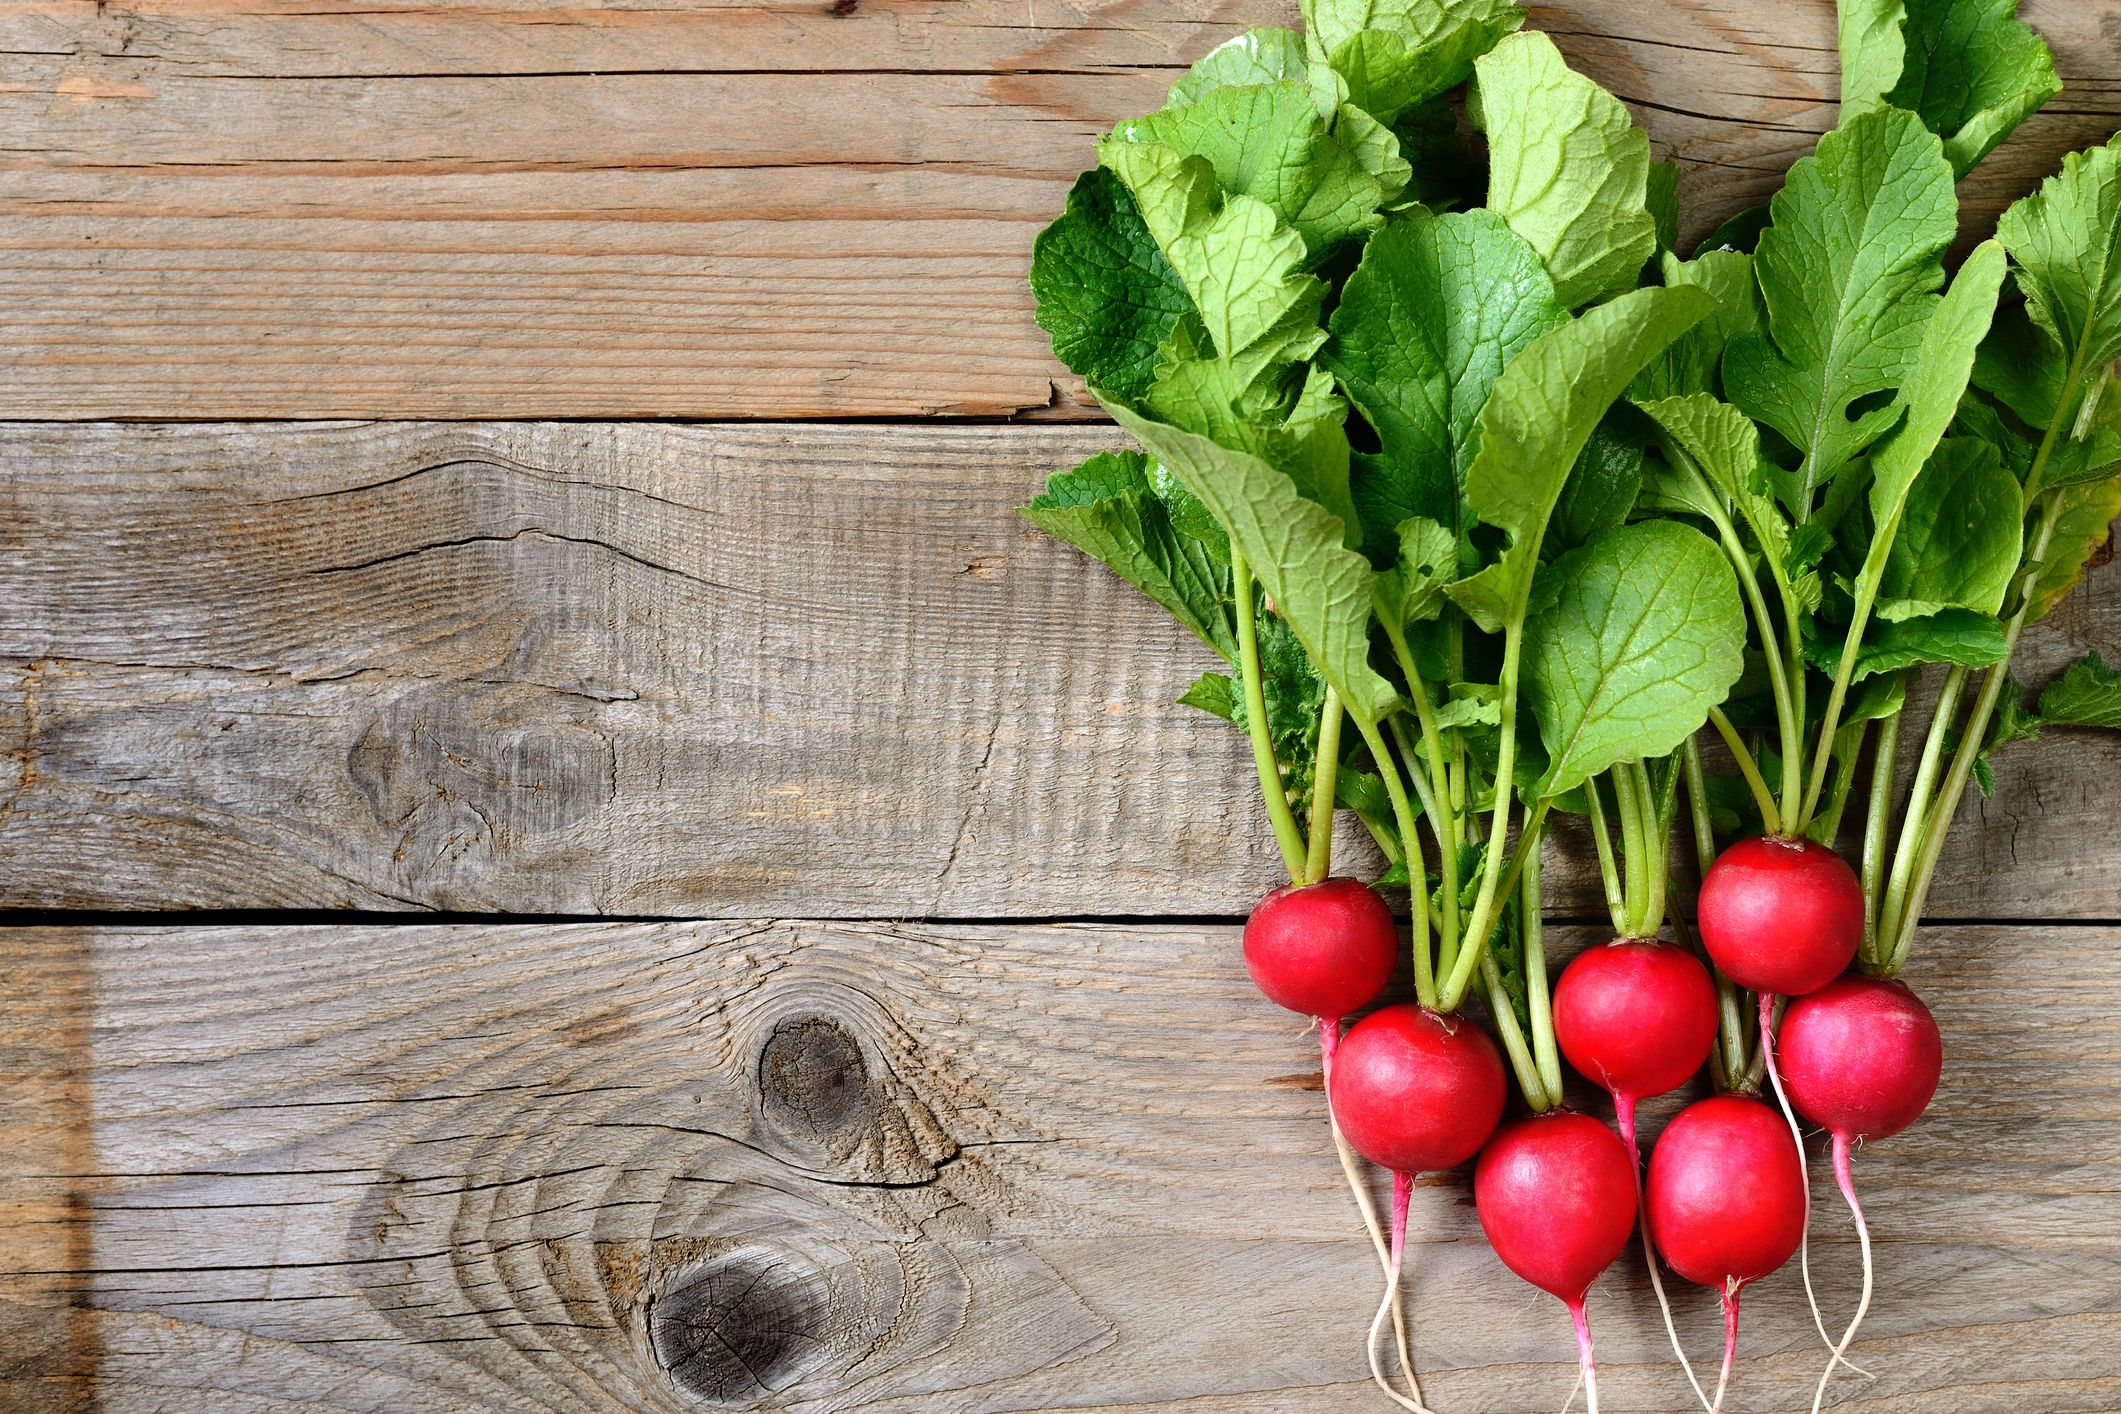 Yes, You Should Eat That Radish Garnish On Your Plate